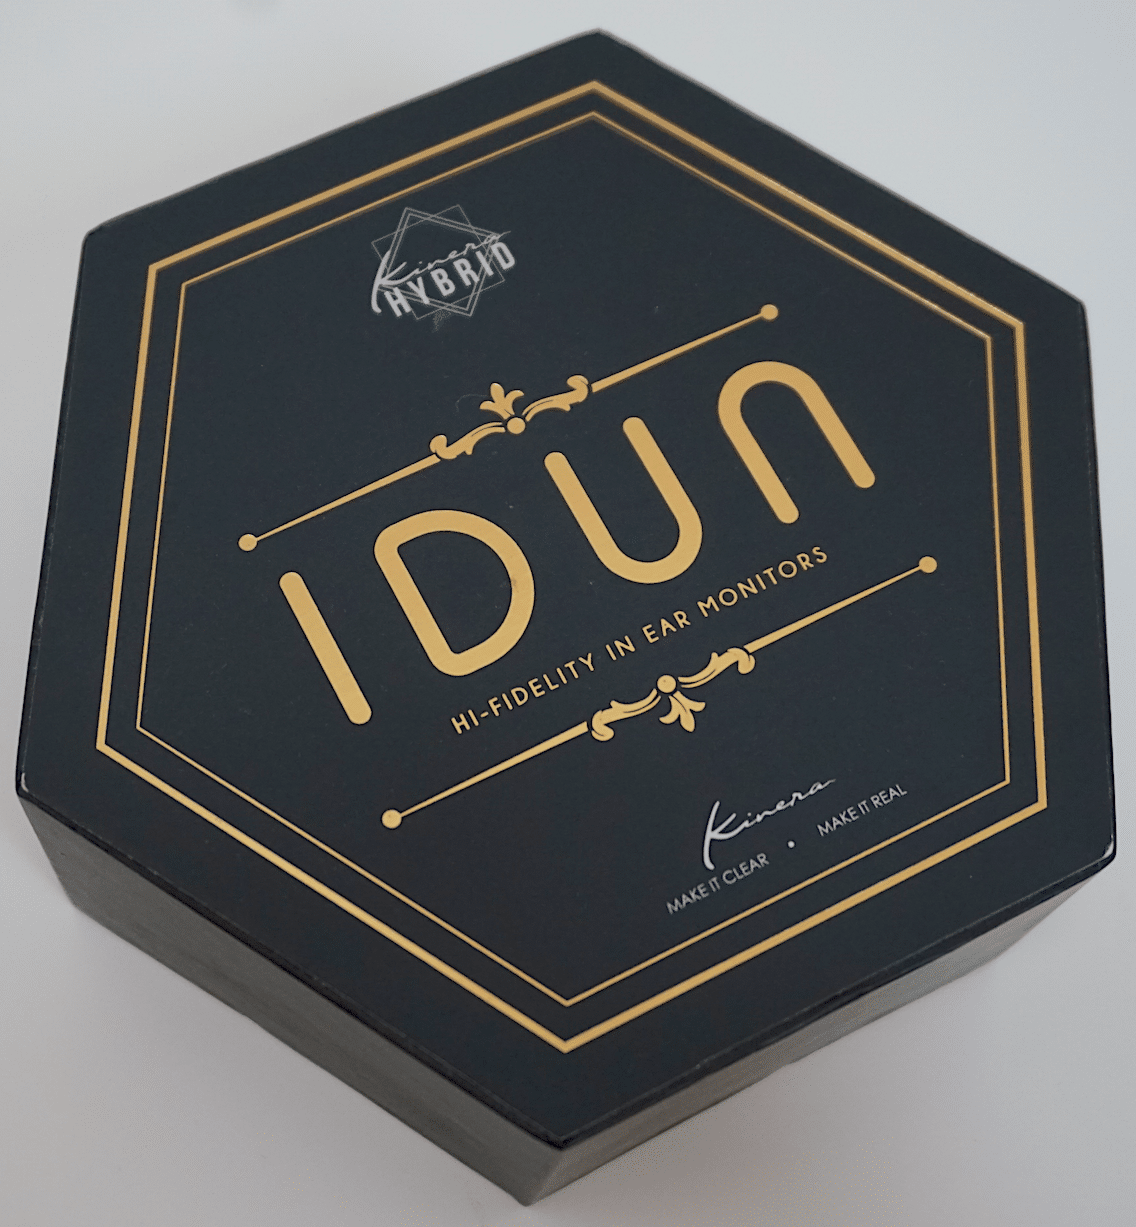 Idun earphones From Kinera : deceiving honesty